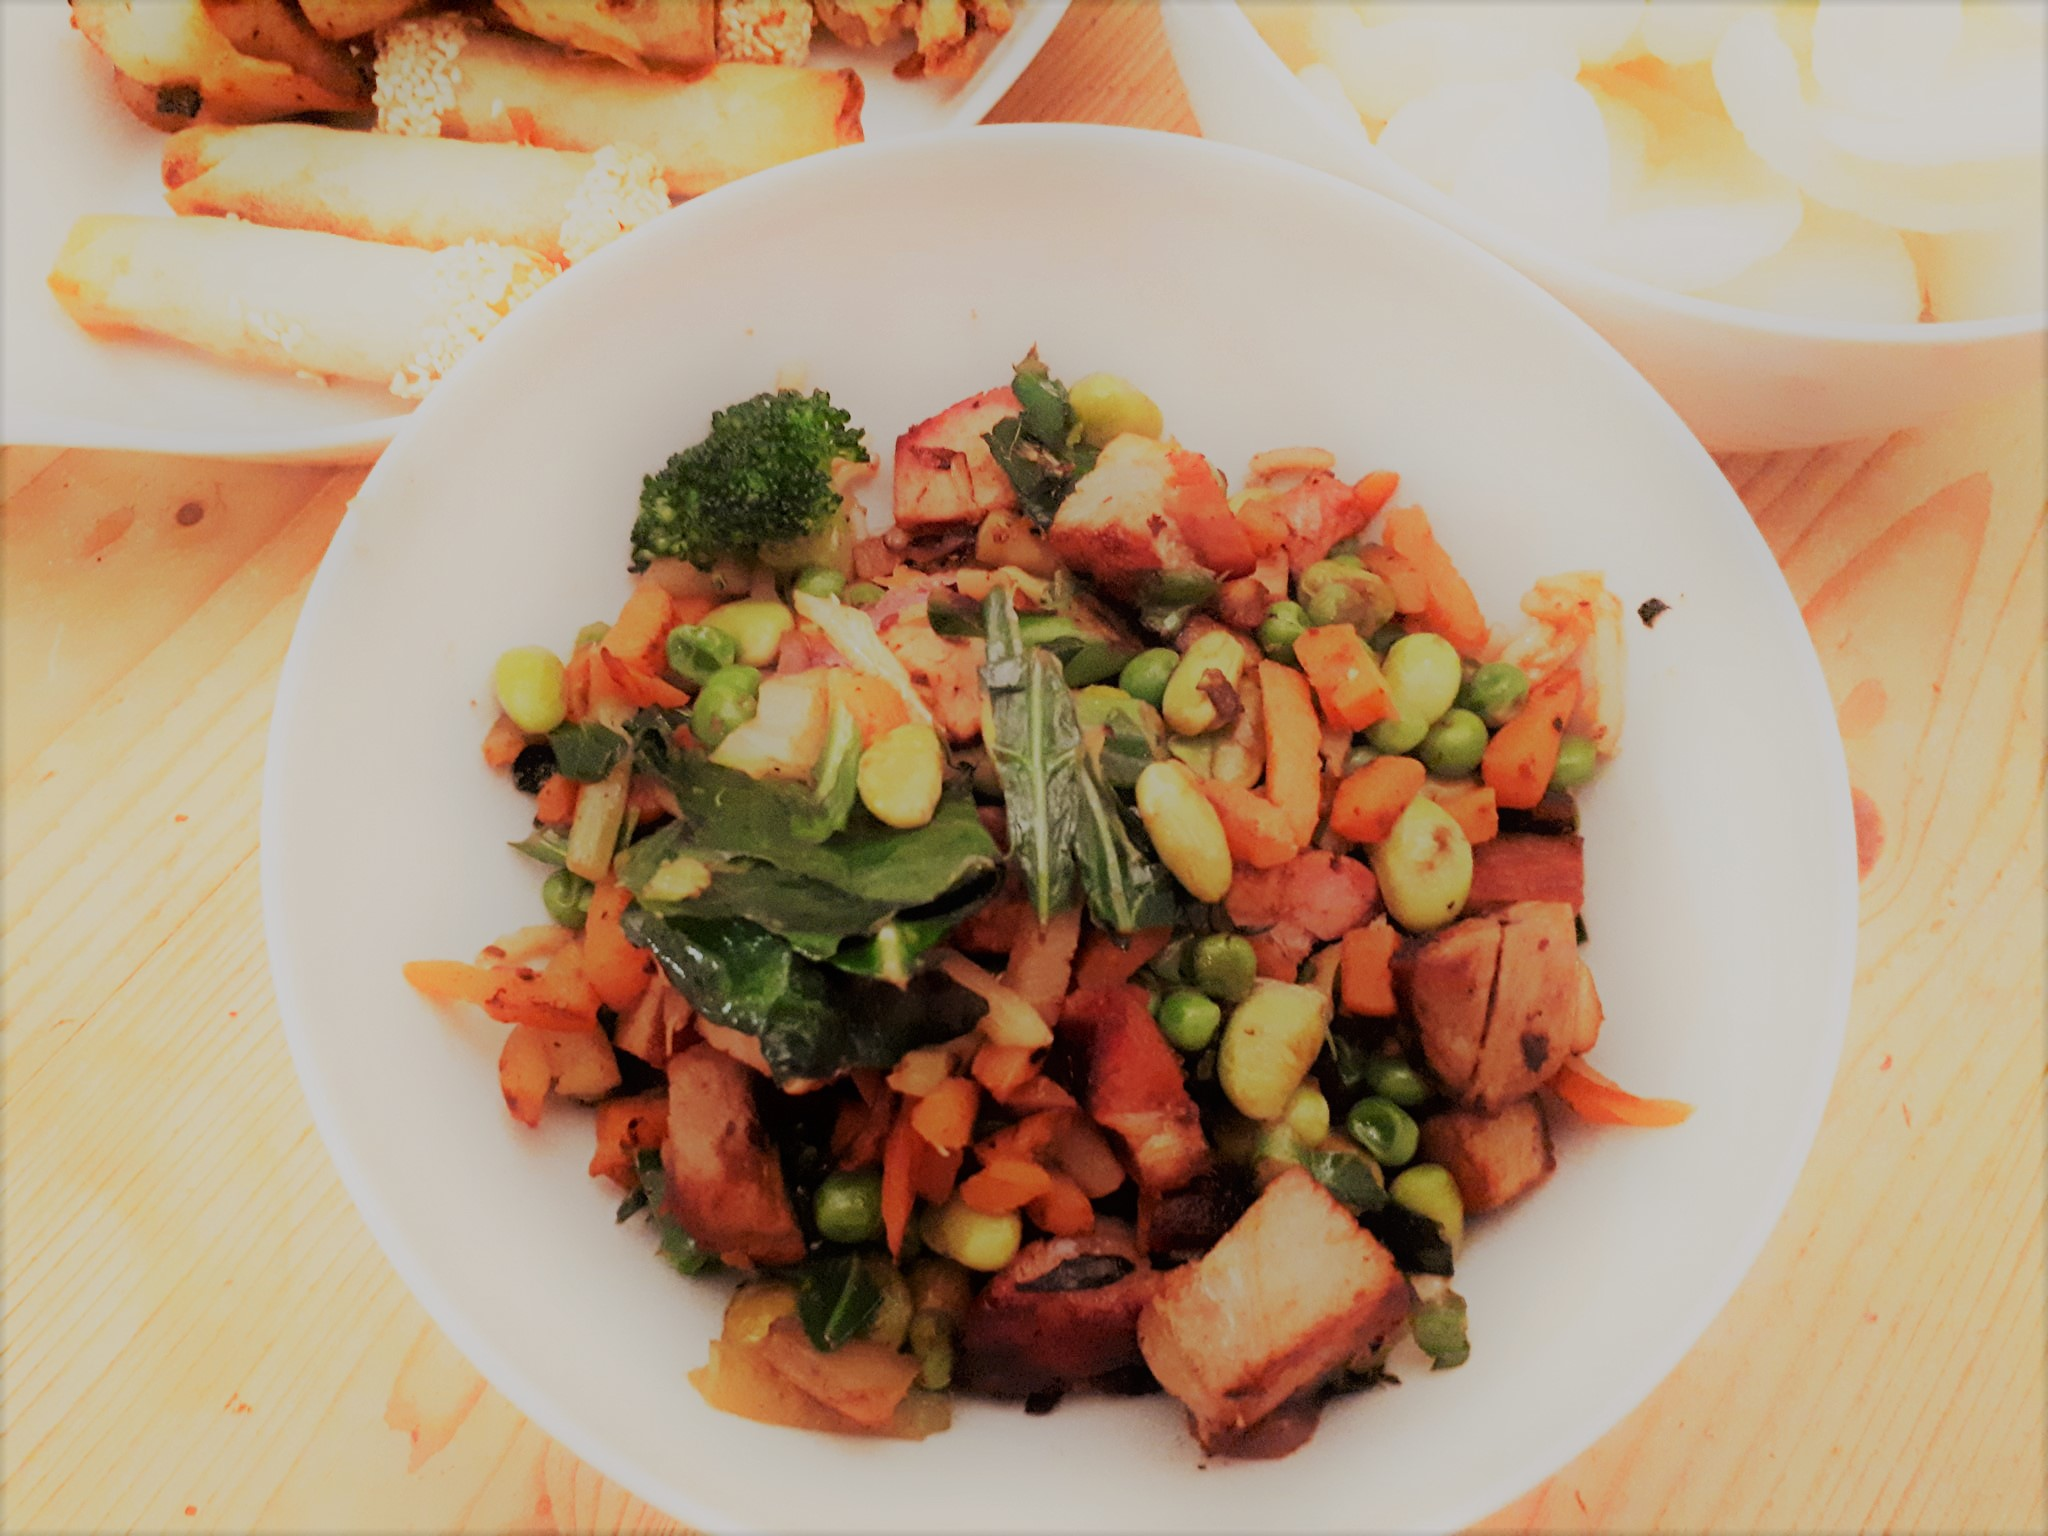 Pork and Pea Stir Fry